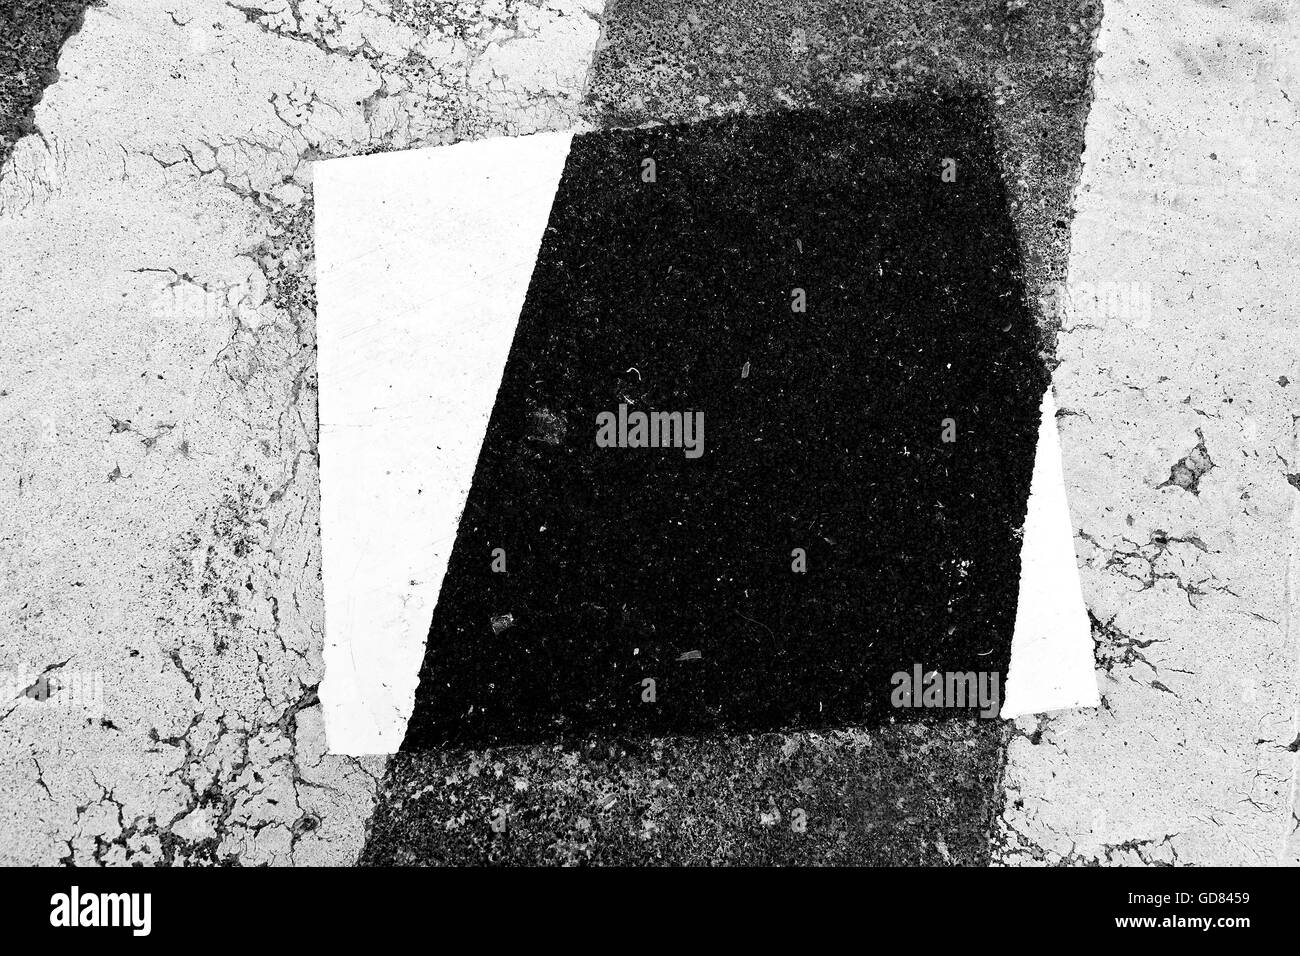 patch on a crosswalk. Black and white - Stock Image